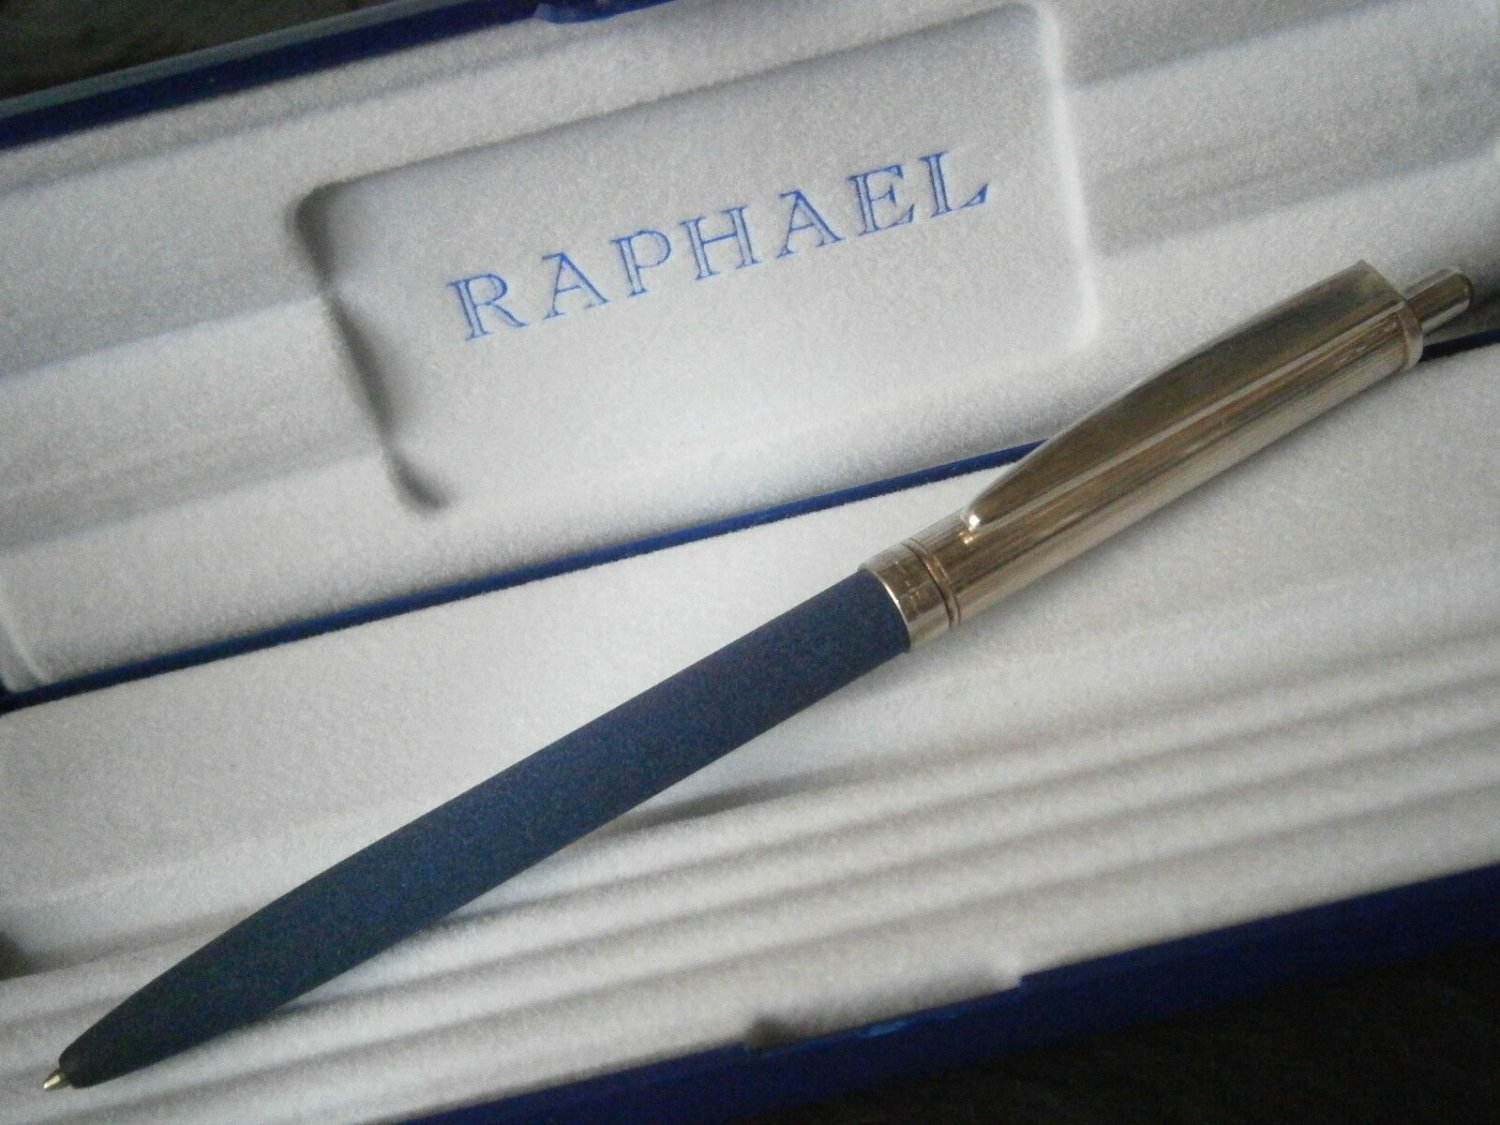 RAPHAEL ball pen in STERLING SILVER 925 and blue color Original in gift box